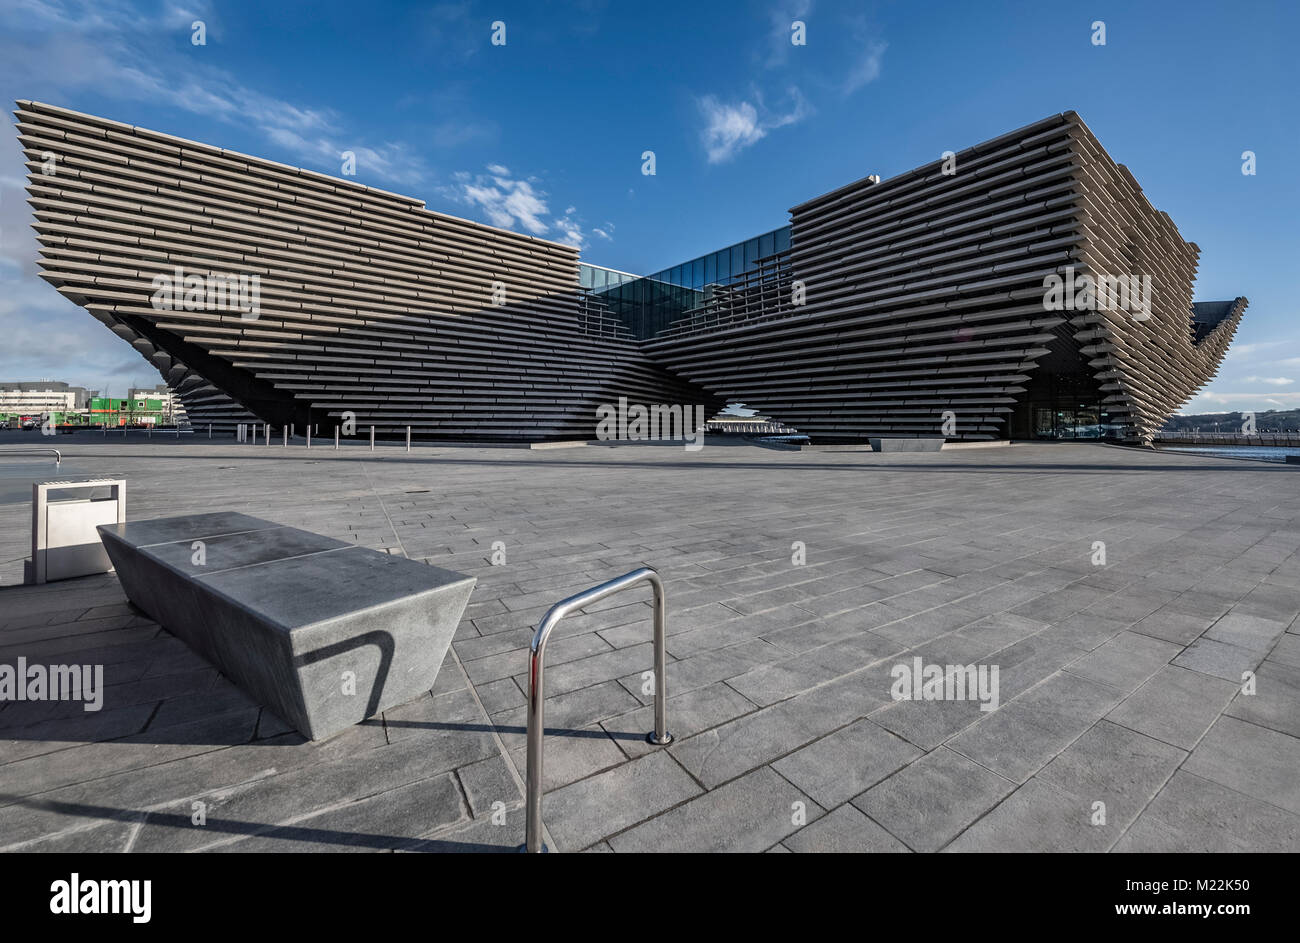 Dundee, Scotland 31st January 2018 V&A Museum of Design, Dundee in Scotland - Stock Image